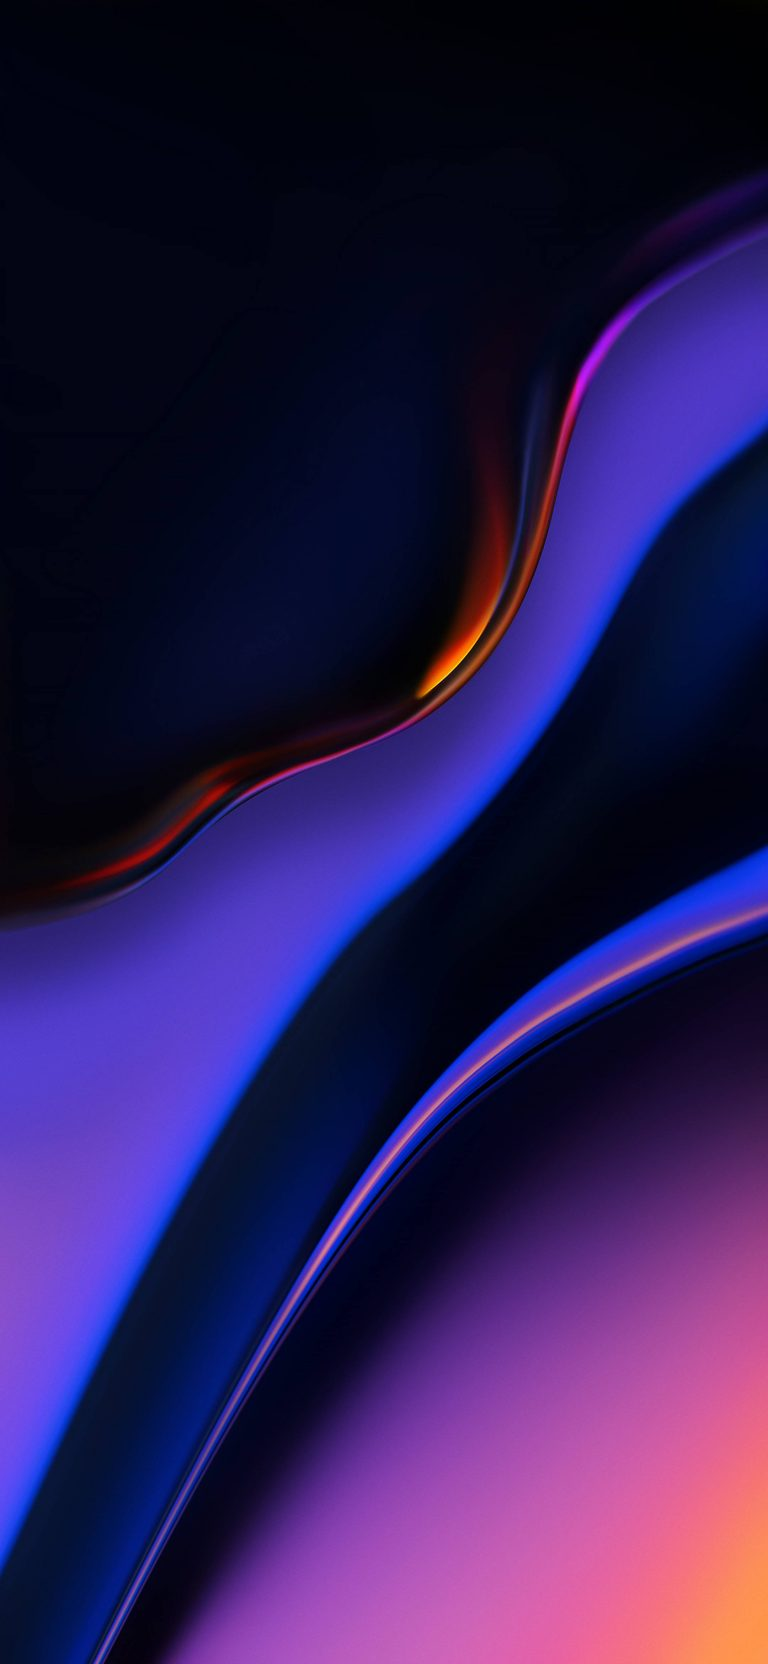 OnePlus 6T Stock Wallpaper 001 2160x4680 768x1664